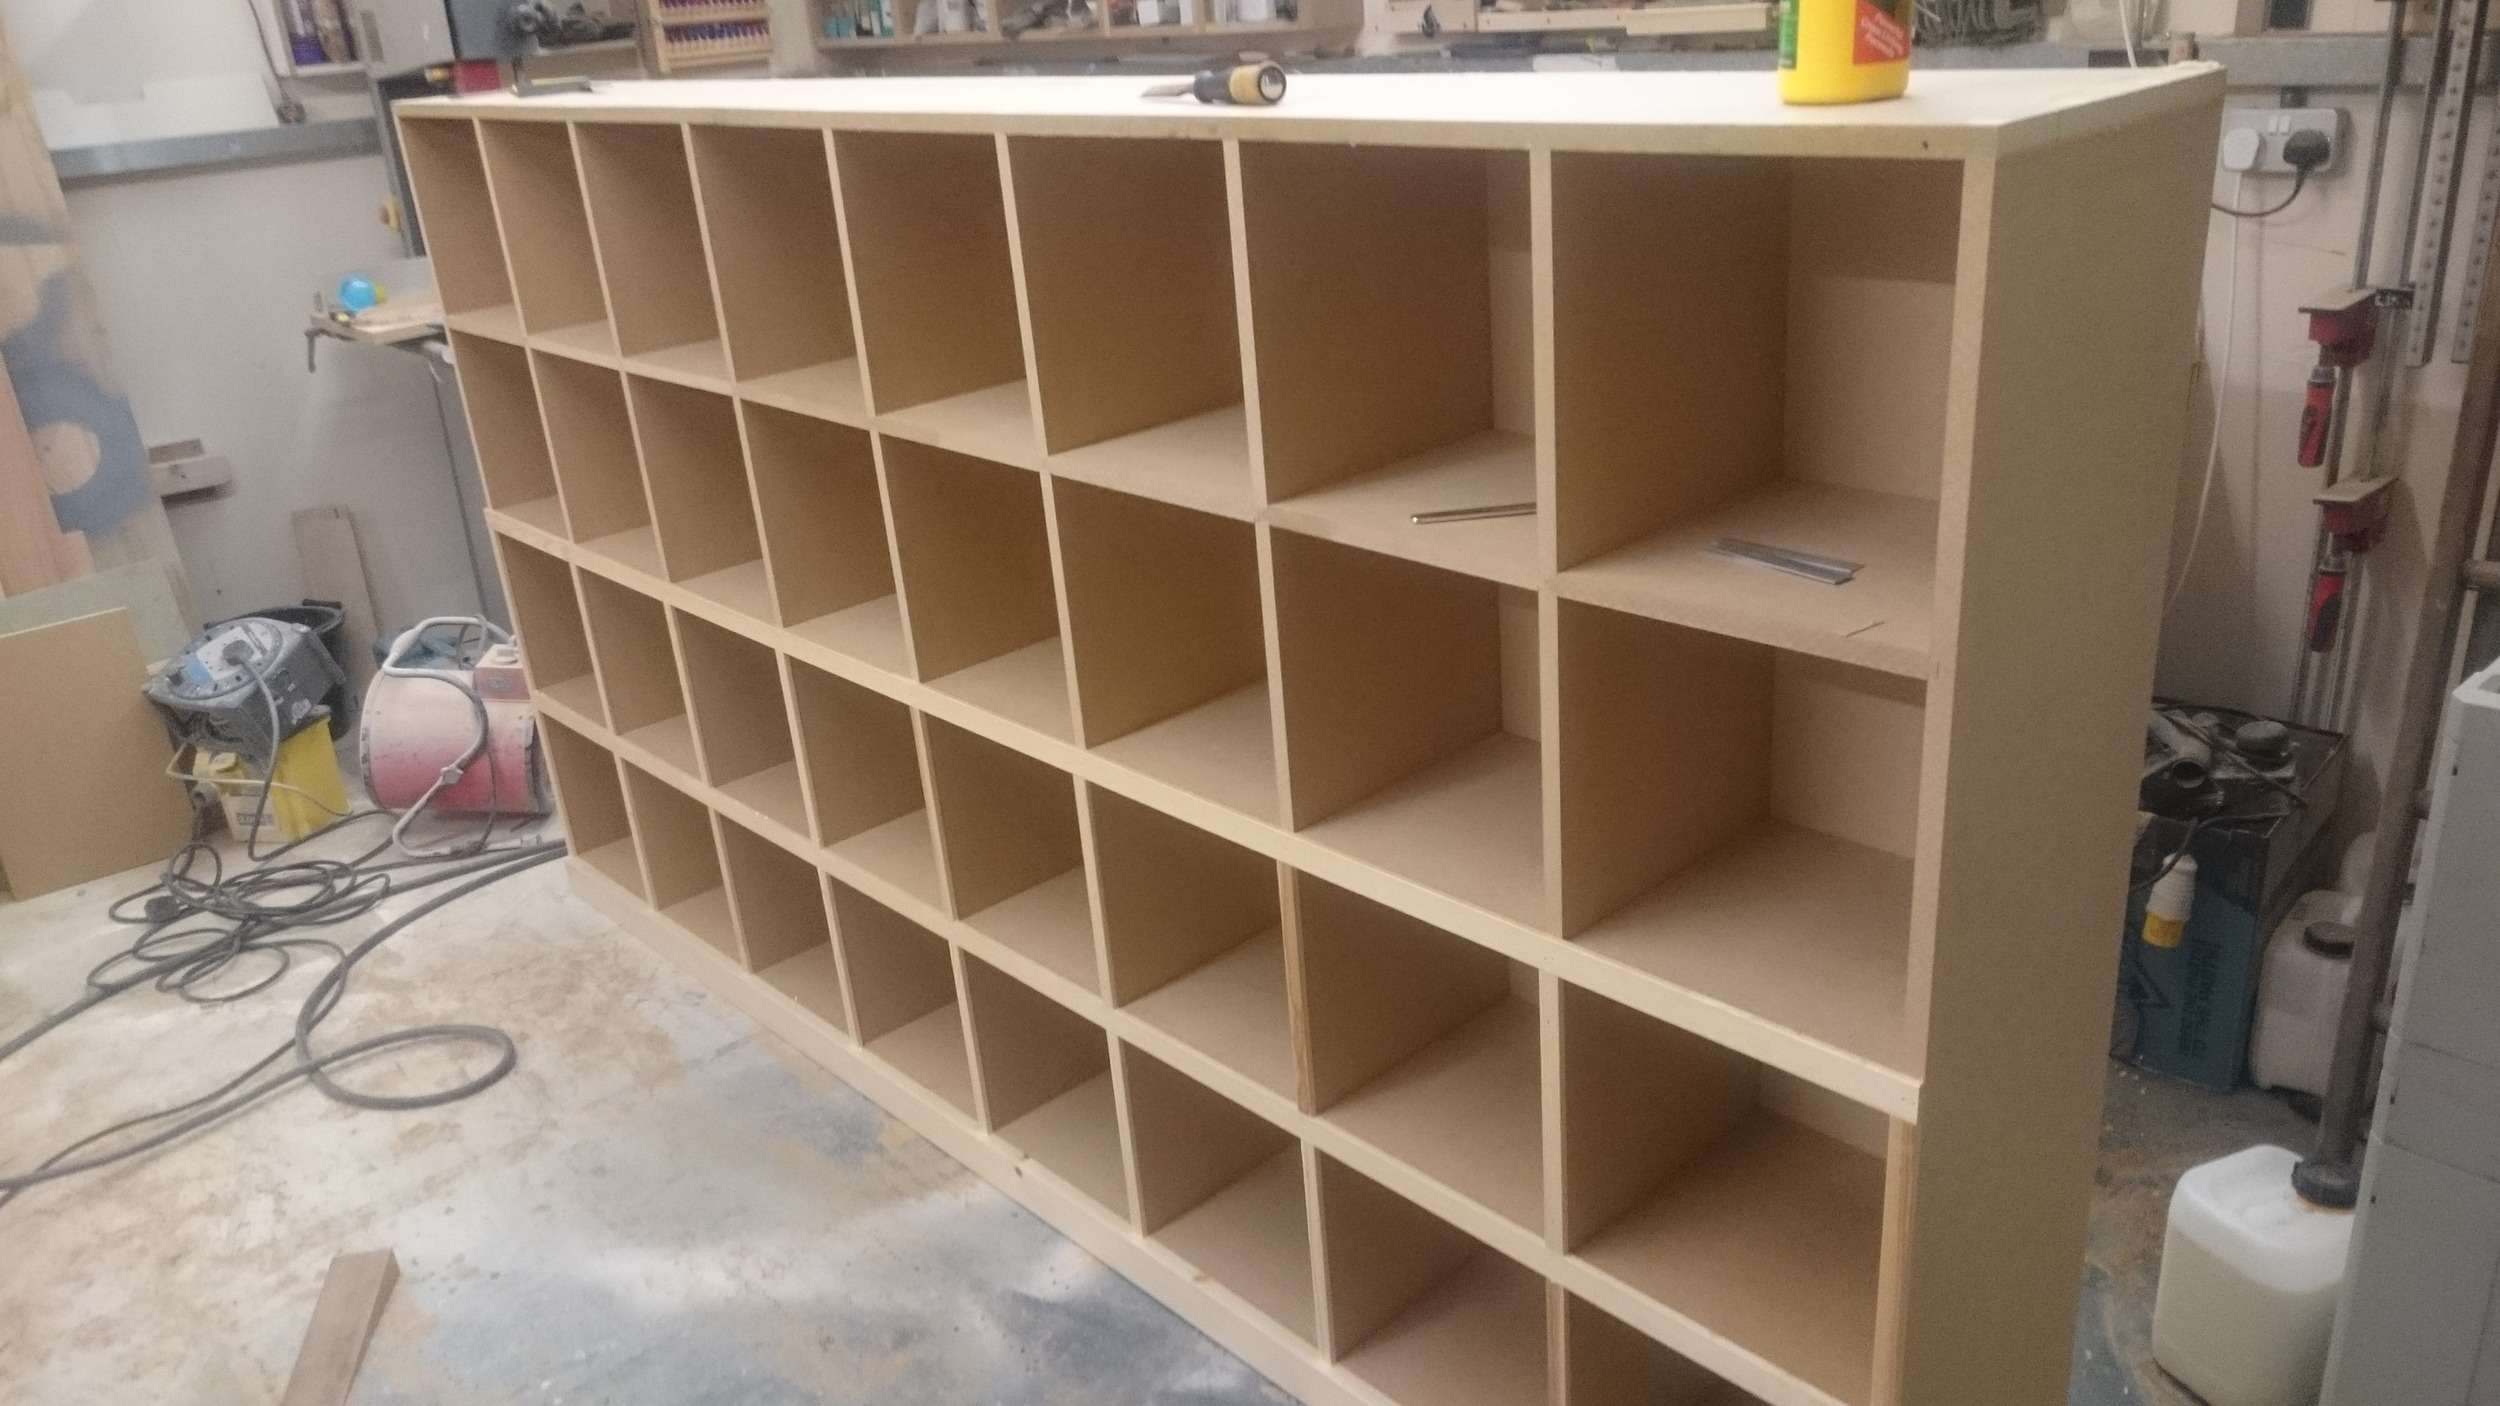 Here is one of the assembled units. You can see that I have started adding the timber trim to cover the edges of the MDF.